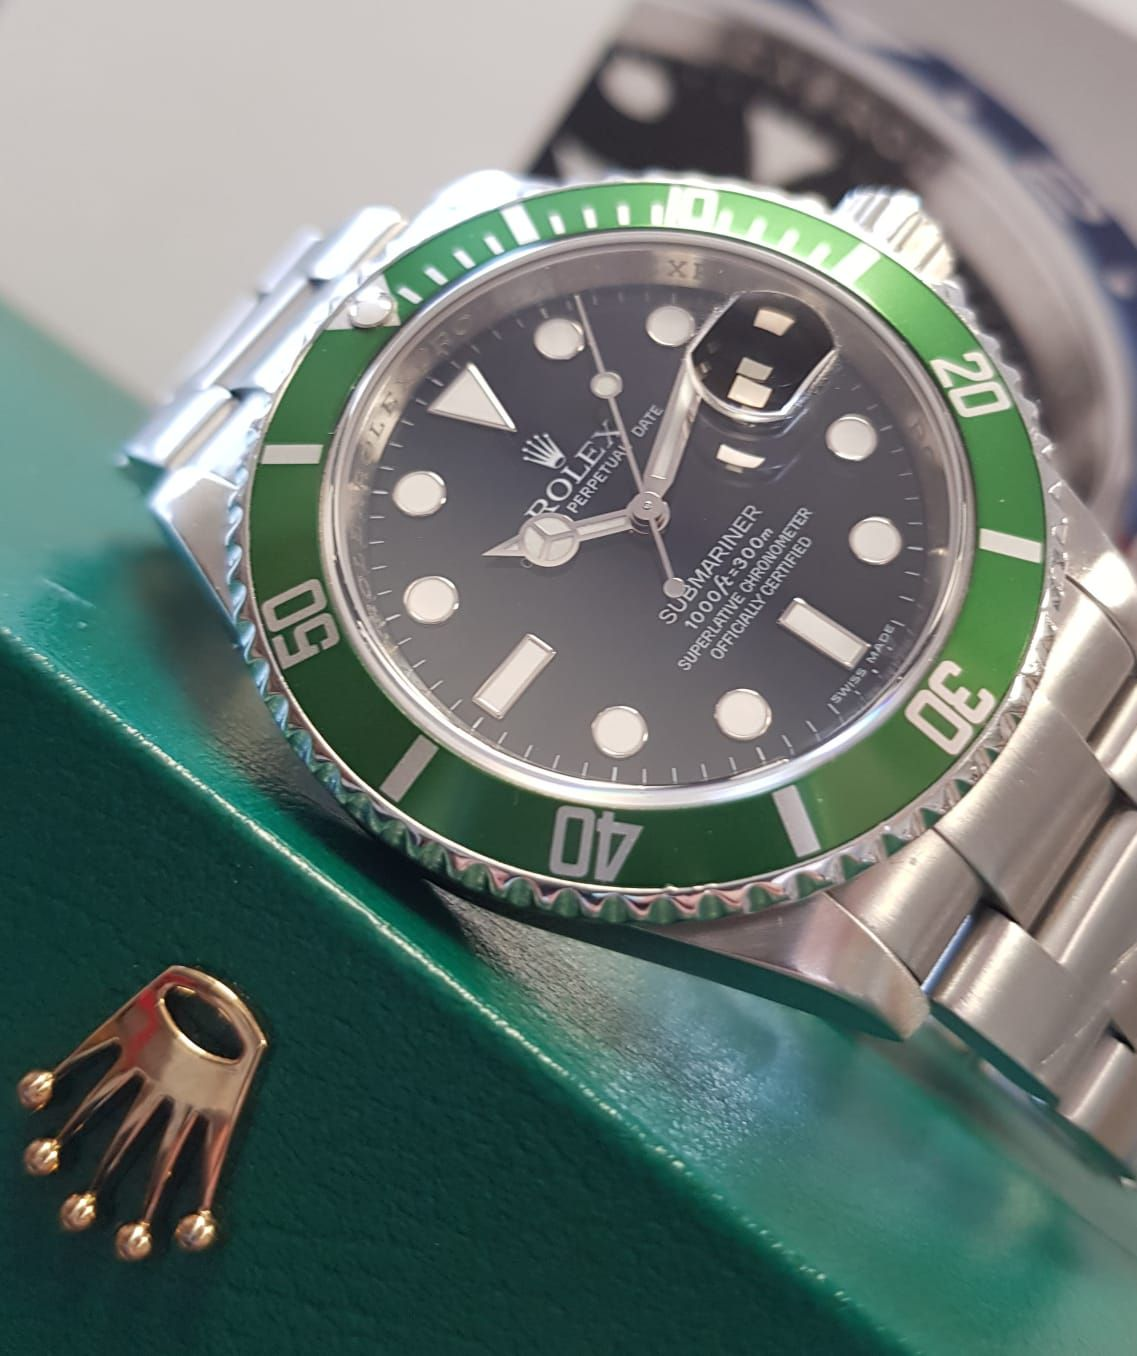 Preowned Rolex Submariner 50th Anniversary Green Bezel